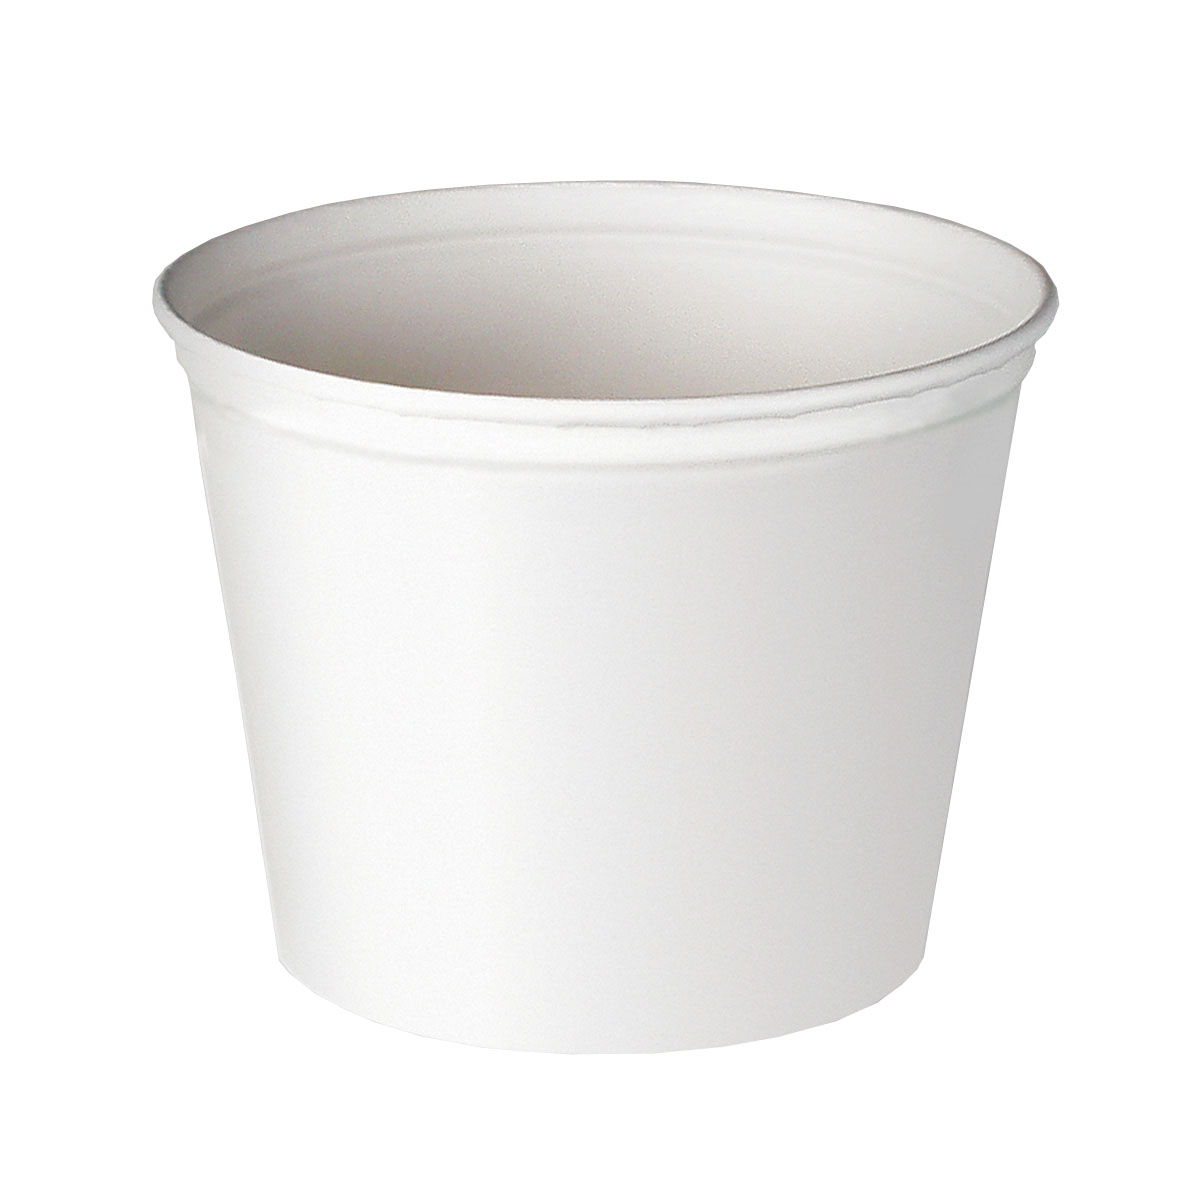 BUCKET PAPER FOOD UNTREATED WHITE 83OZ 100 PER CASE